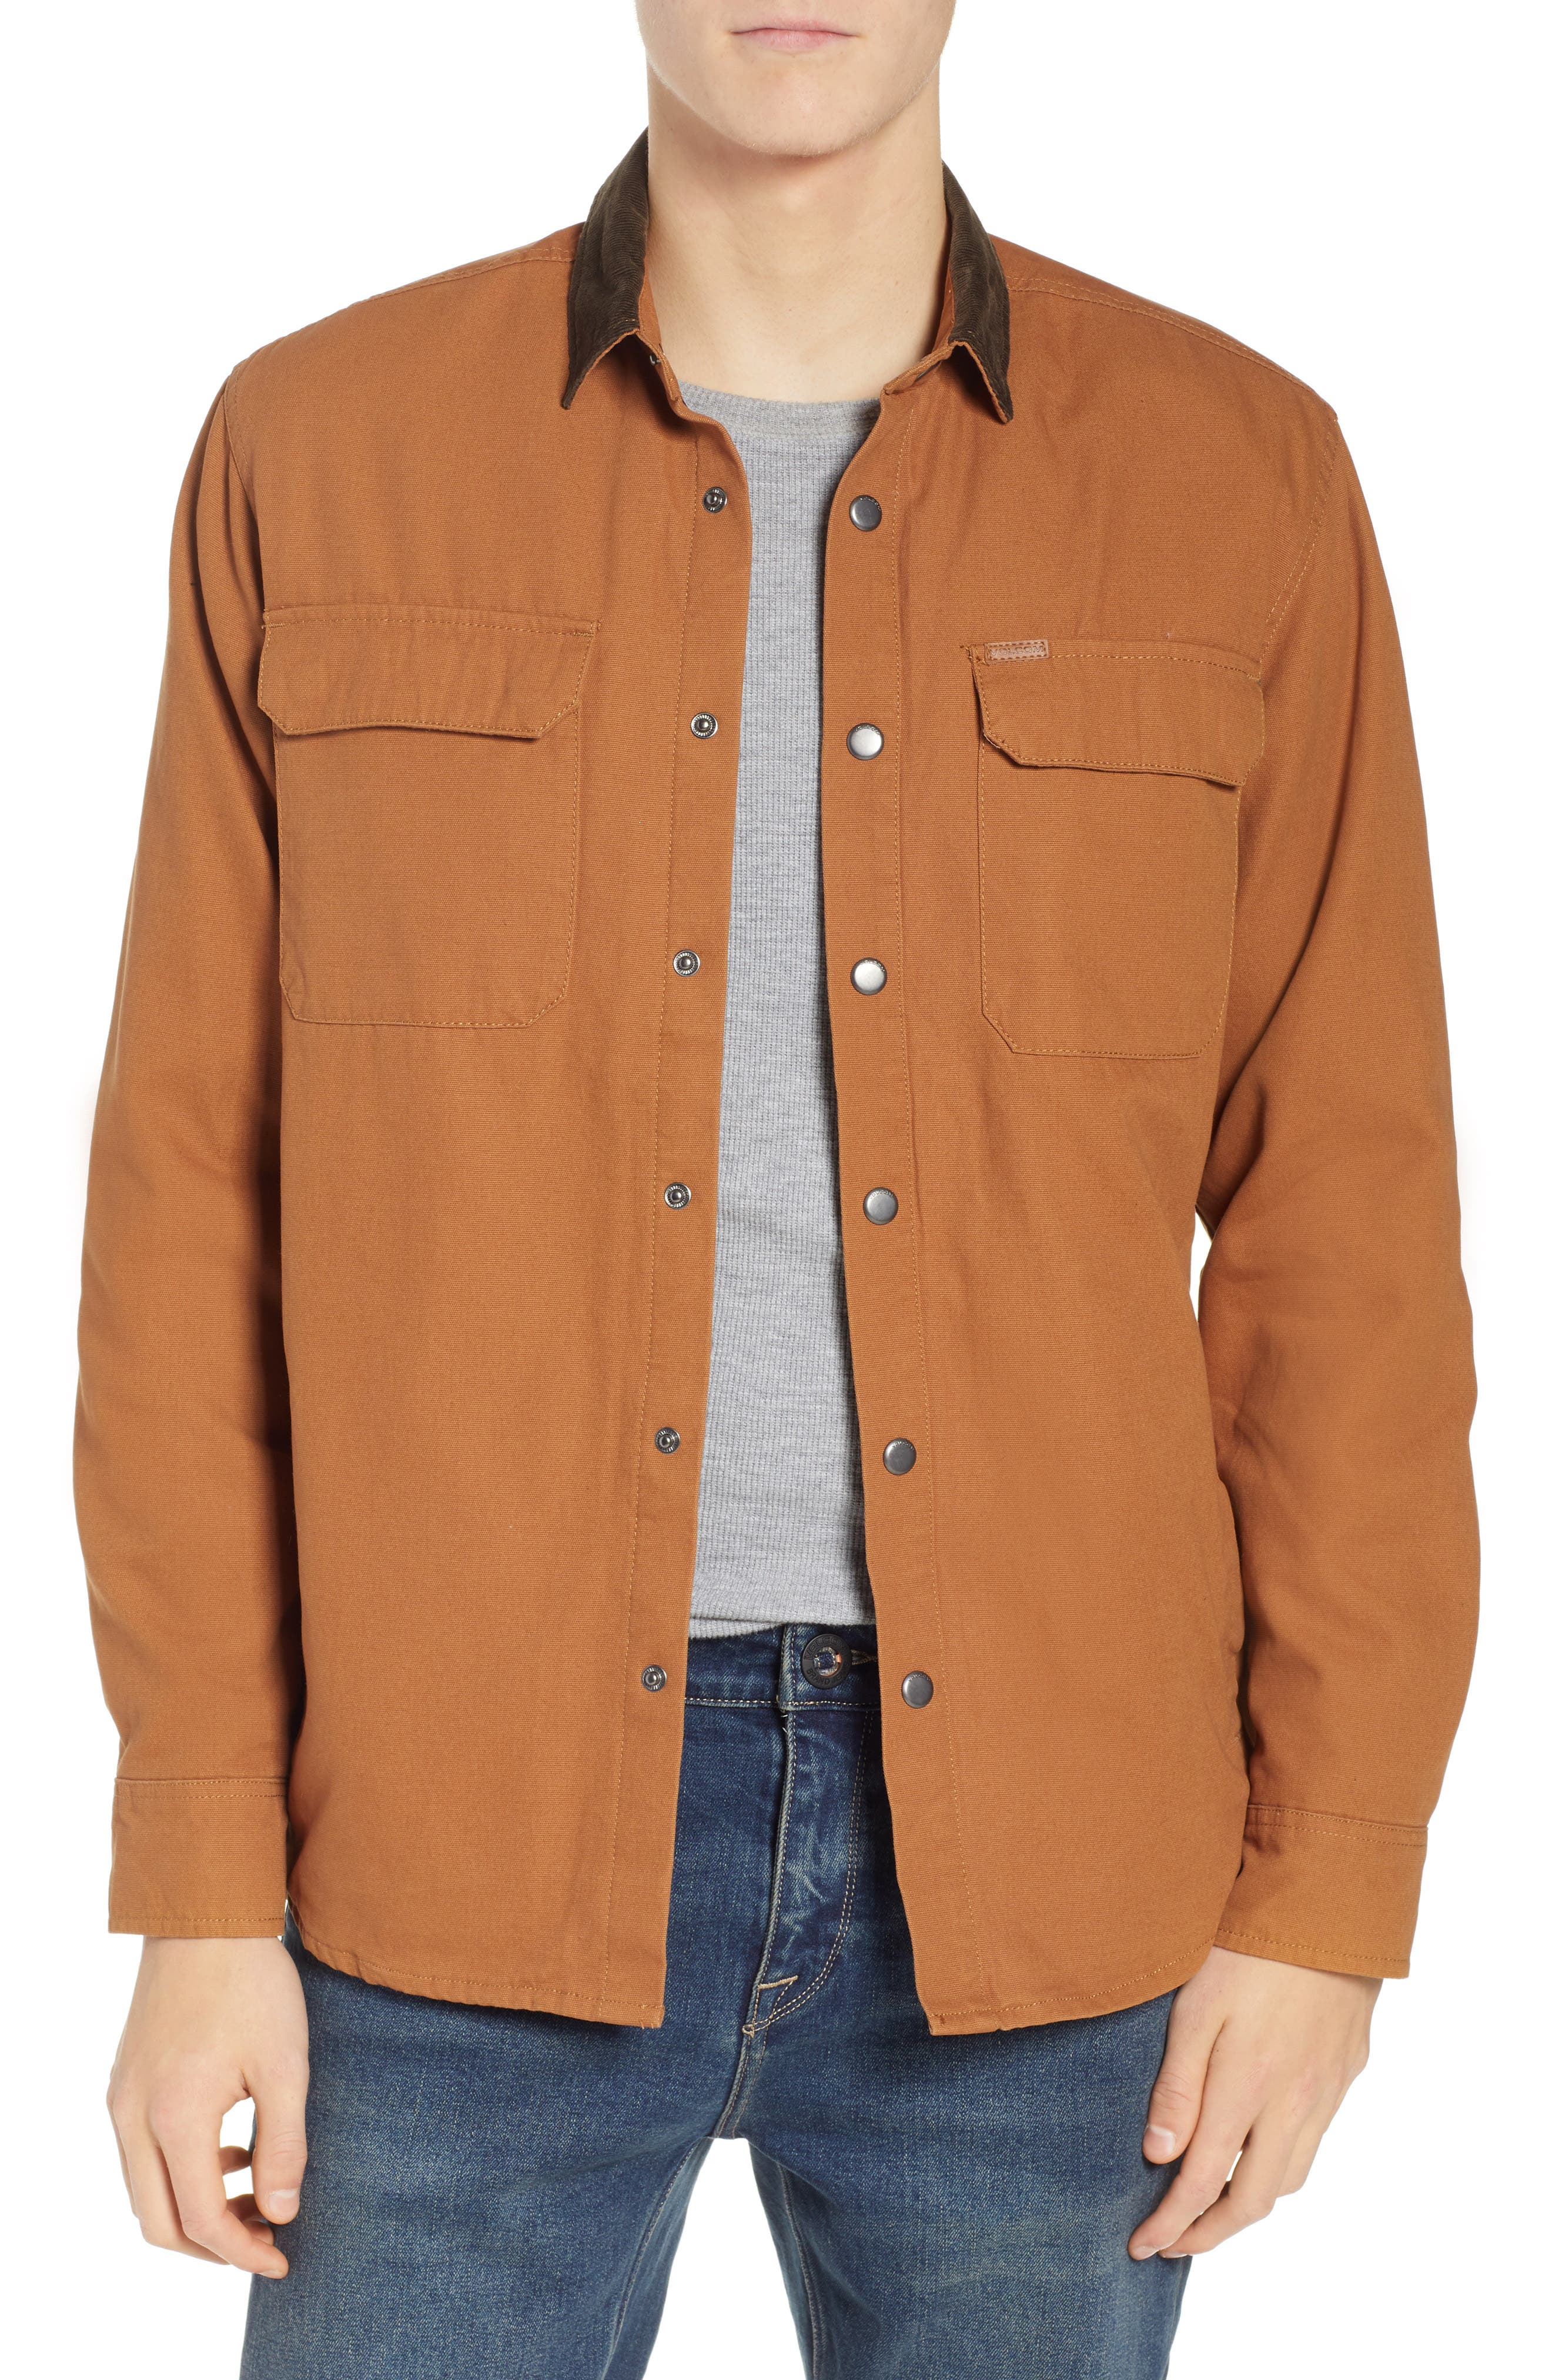 Larkin Classic Fit Jacket,                         Main,                         color, CAMEL